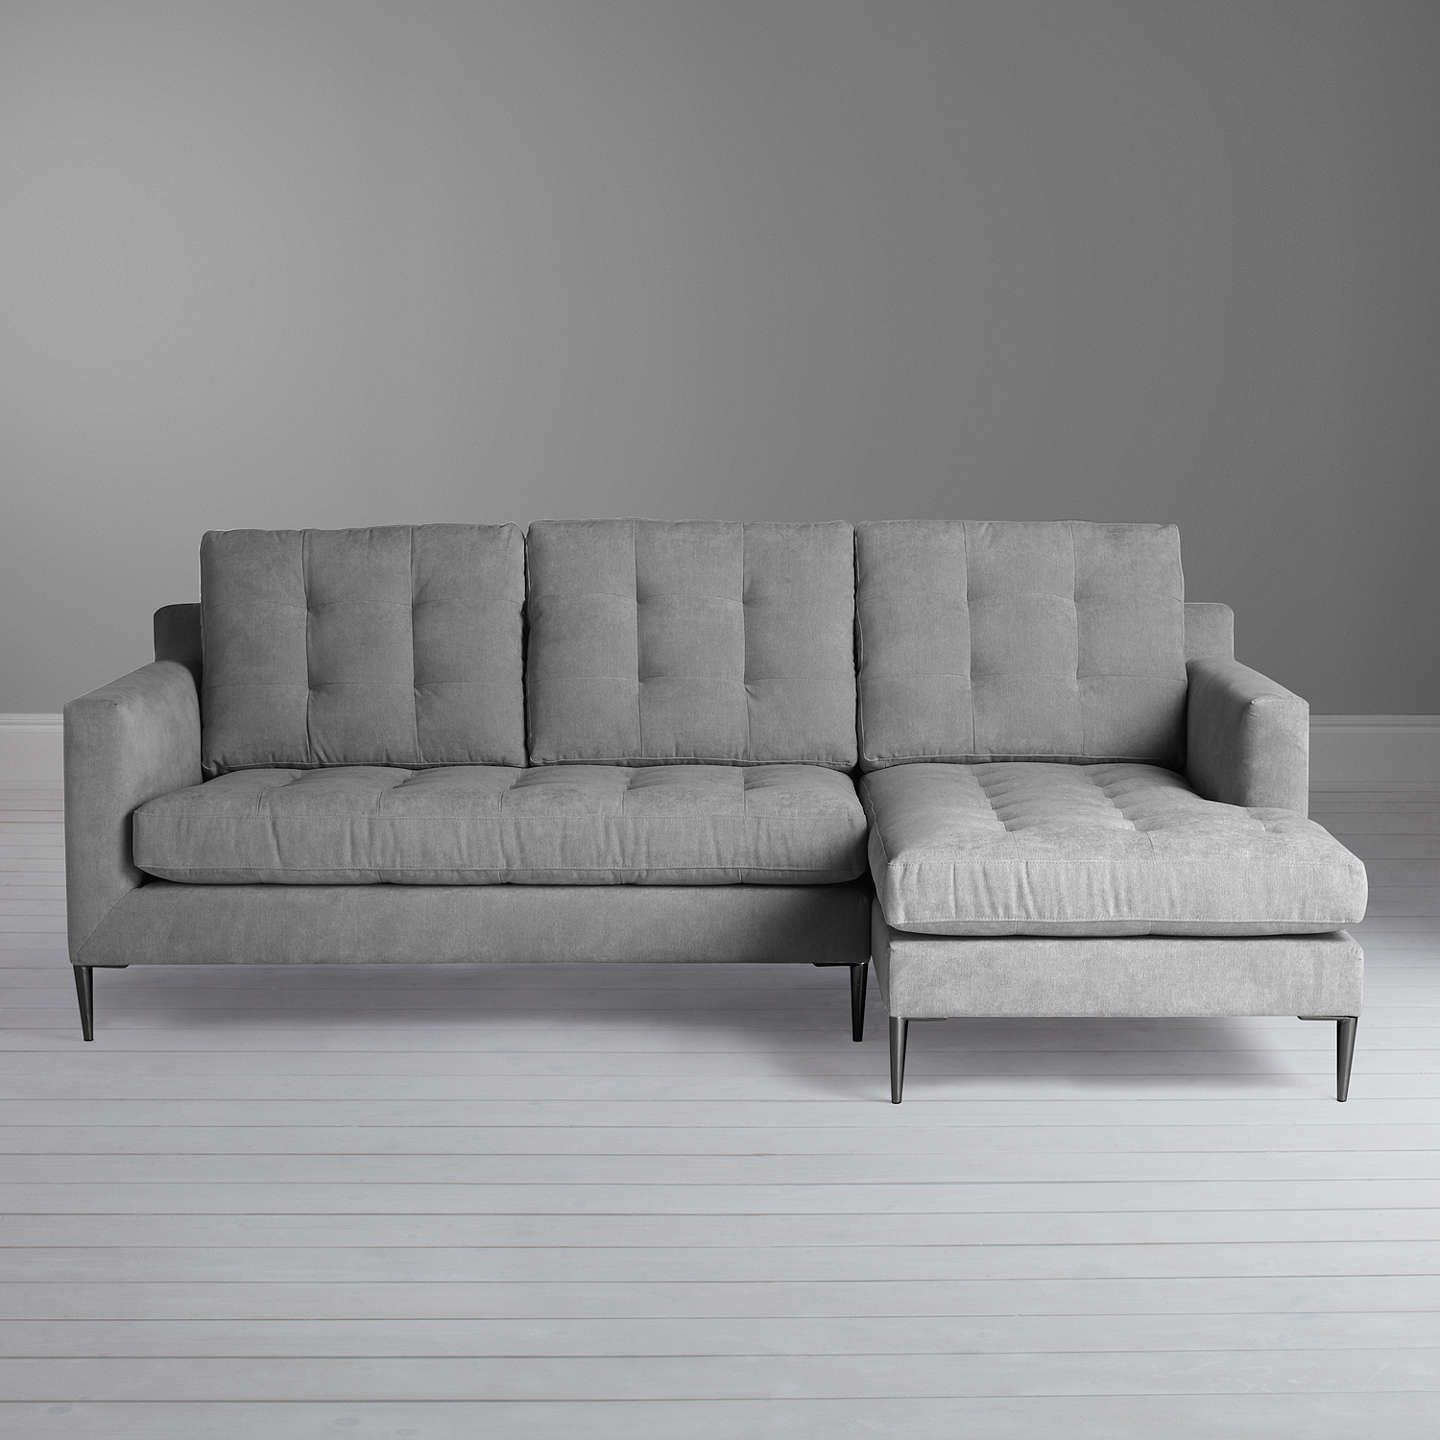 Marl Fabric Smooth Fabric Medium Sofa Imperial Smooth